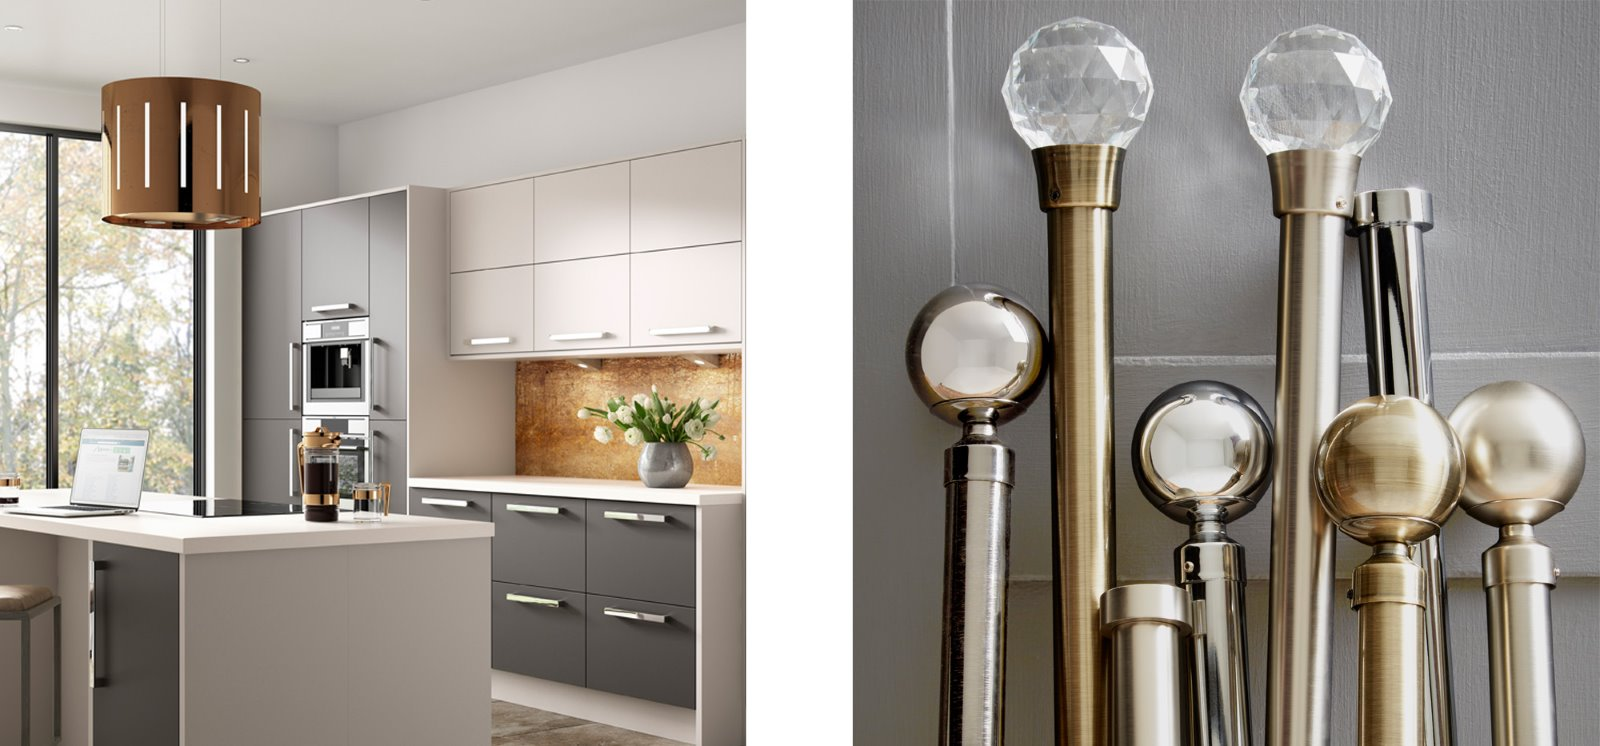 Copper splashback chrome curtain poles